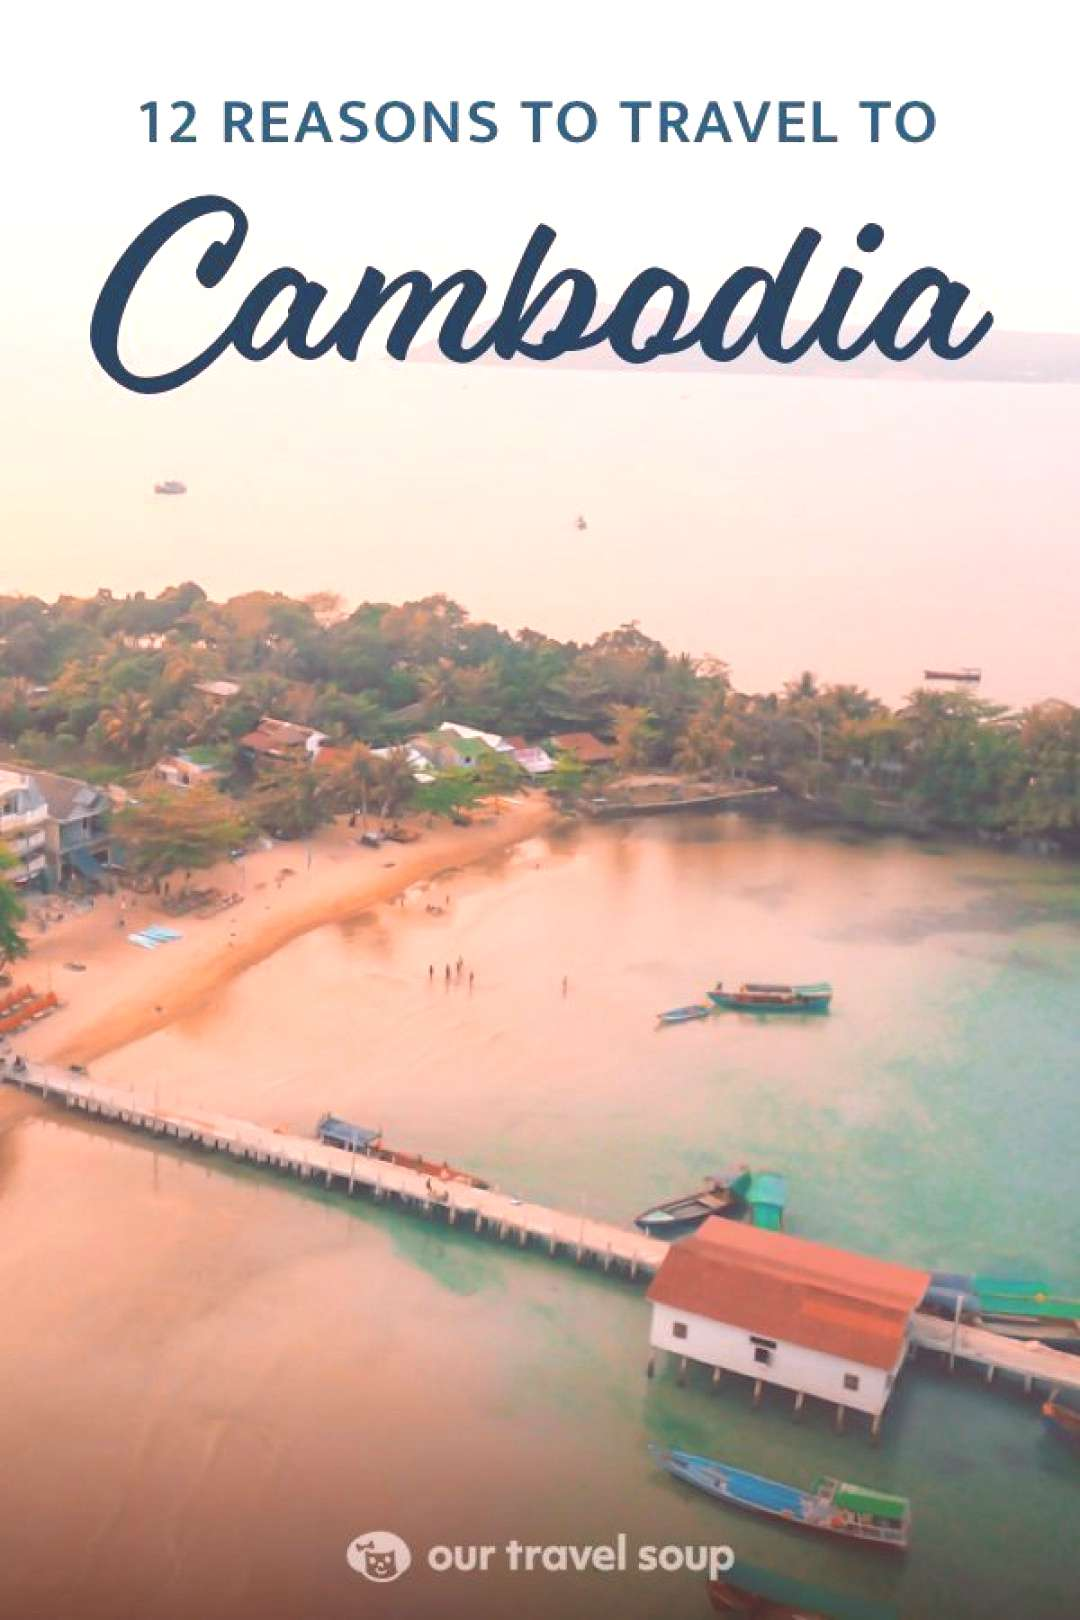 Cambodia is an amazing country with so much to see and do. You can explore the ancient Angkor templ